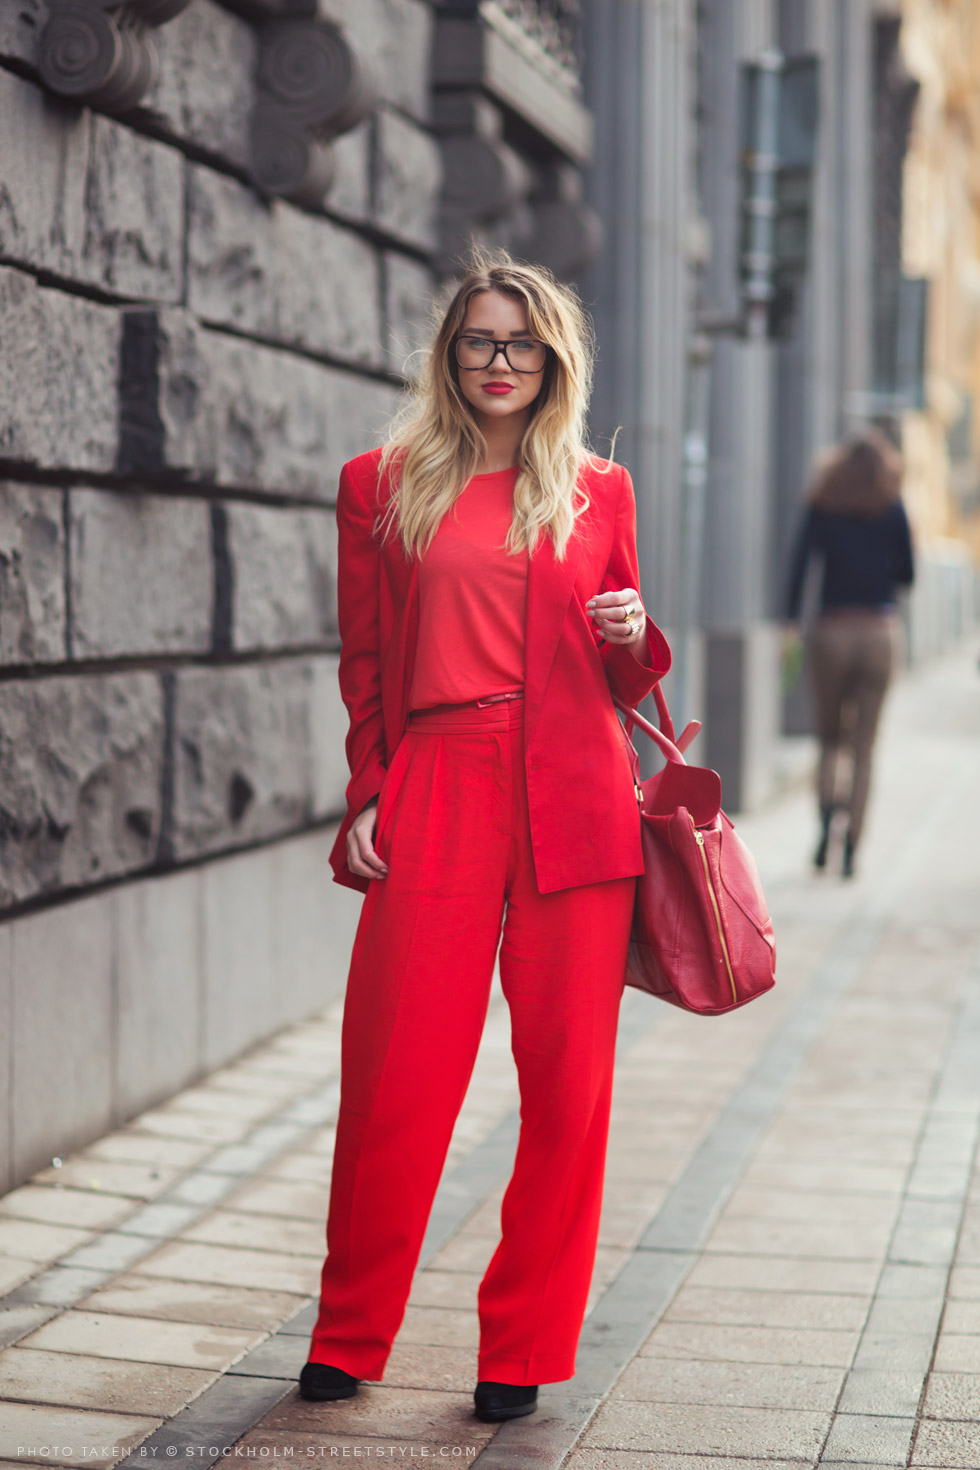 Street Style Files: All In Red